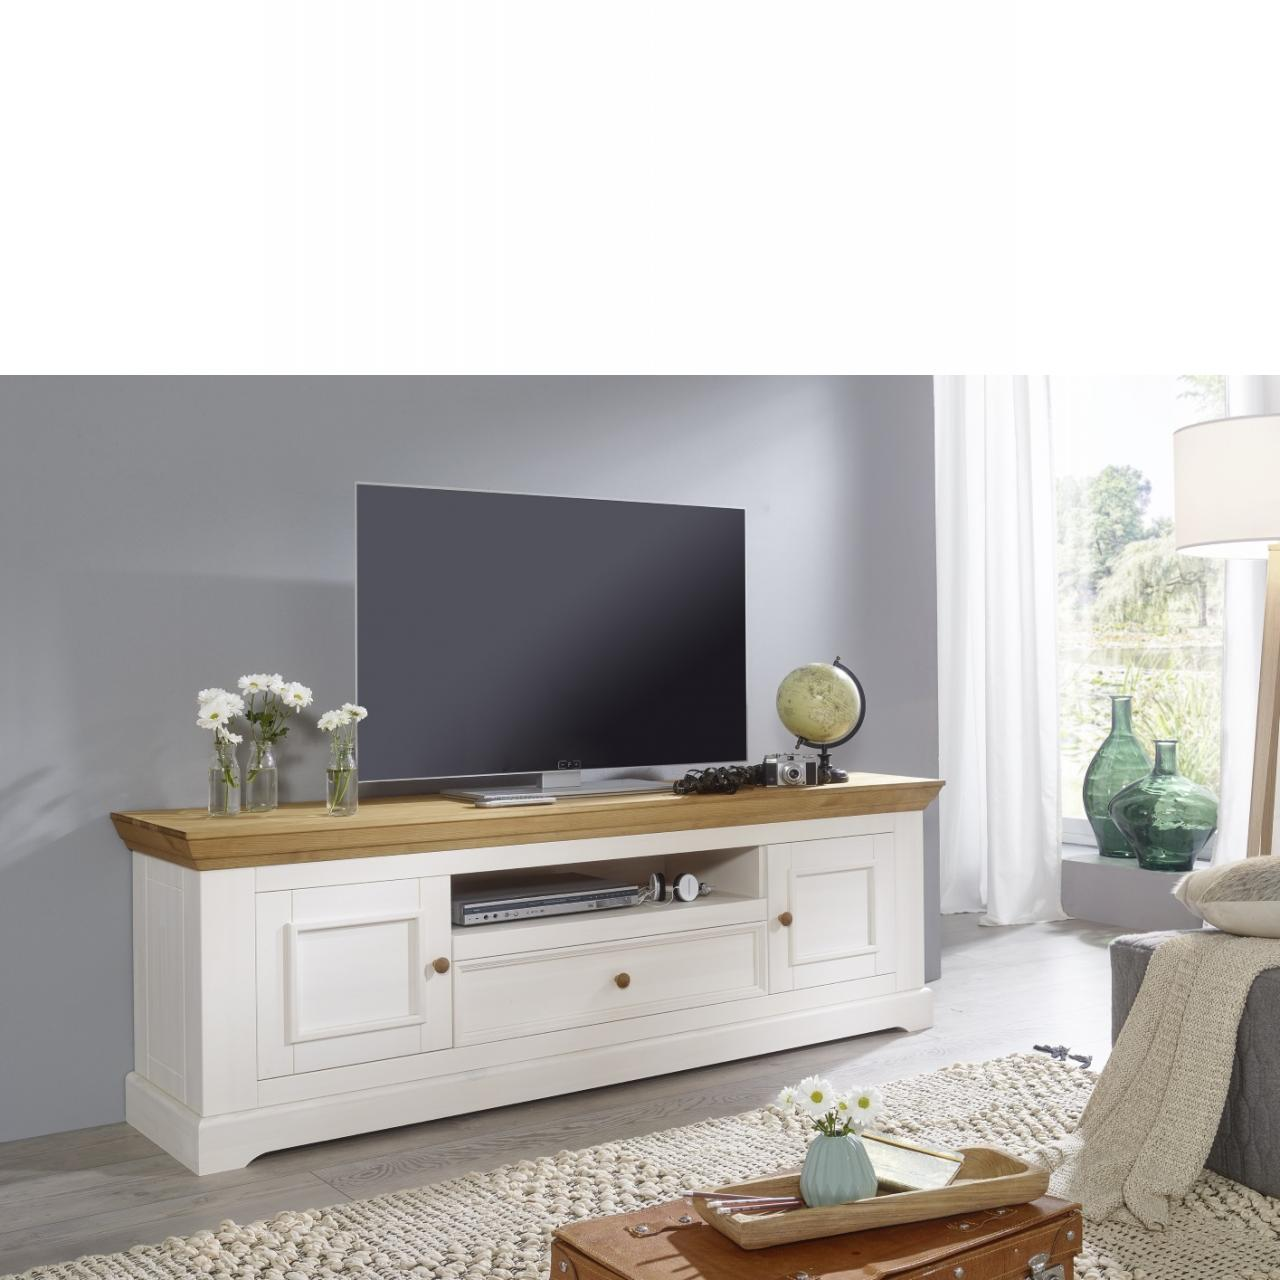 wohnzimmer m bel auf raten mobel bestellen tv lowboard. Black Bedroom Furniture Sets. Home Design Ideas